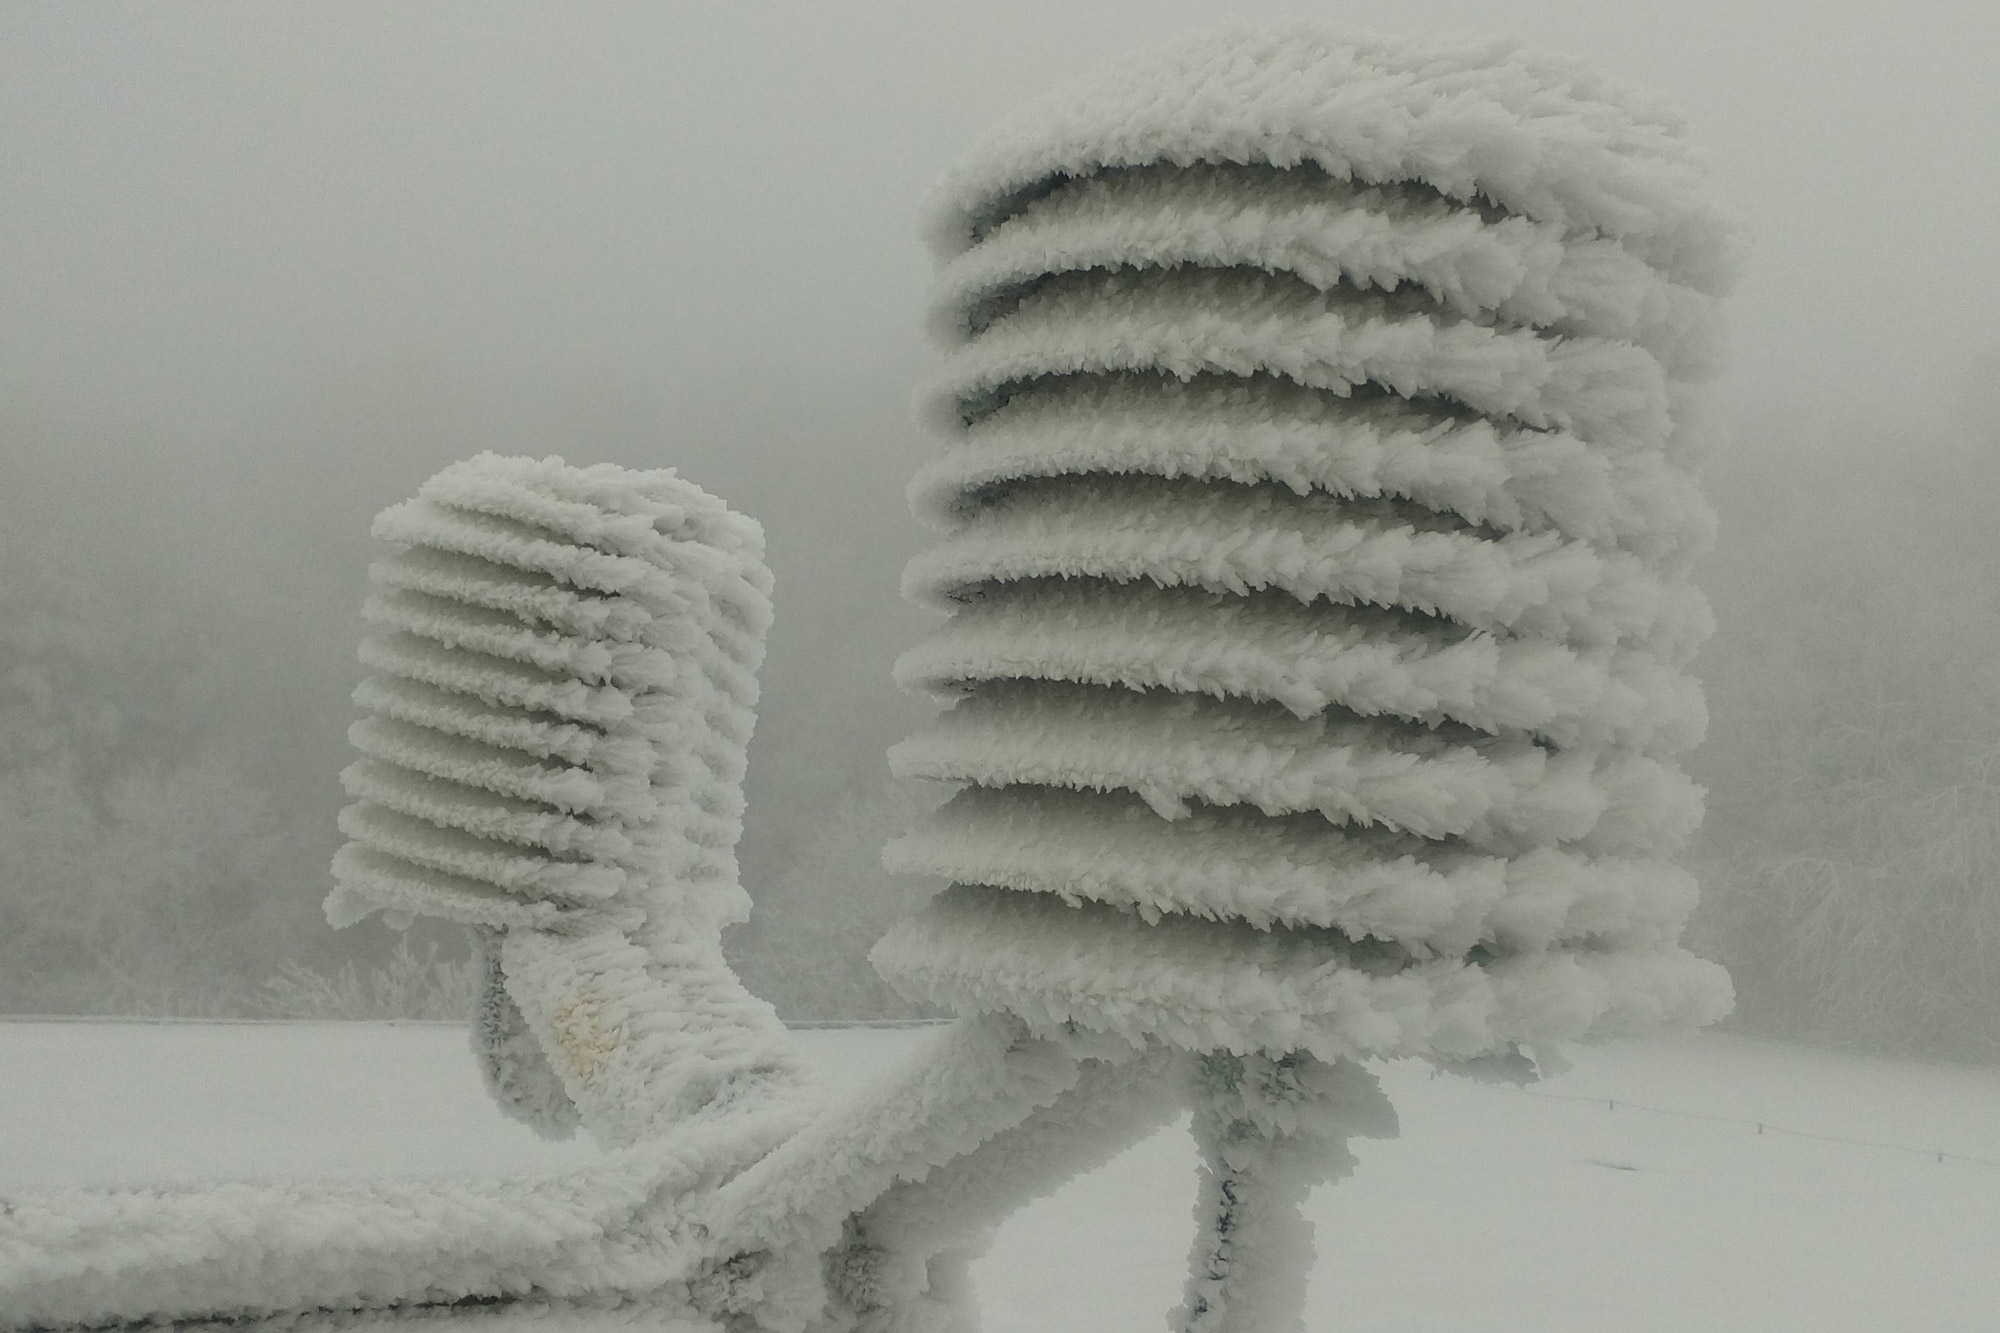 radiation-shield-in-winter.jpg